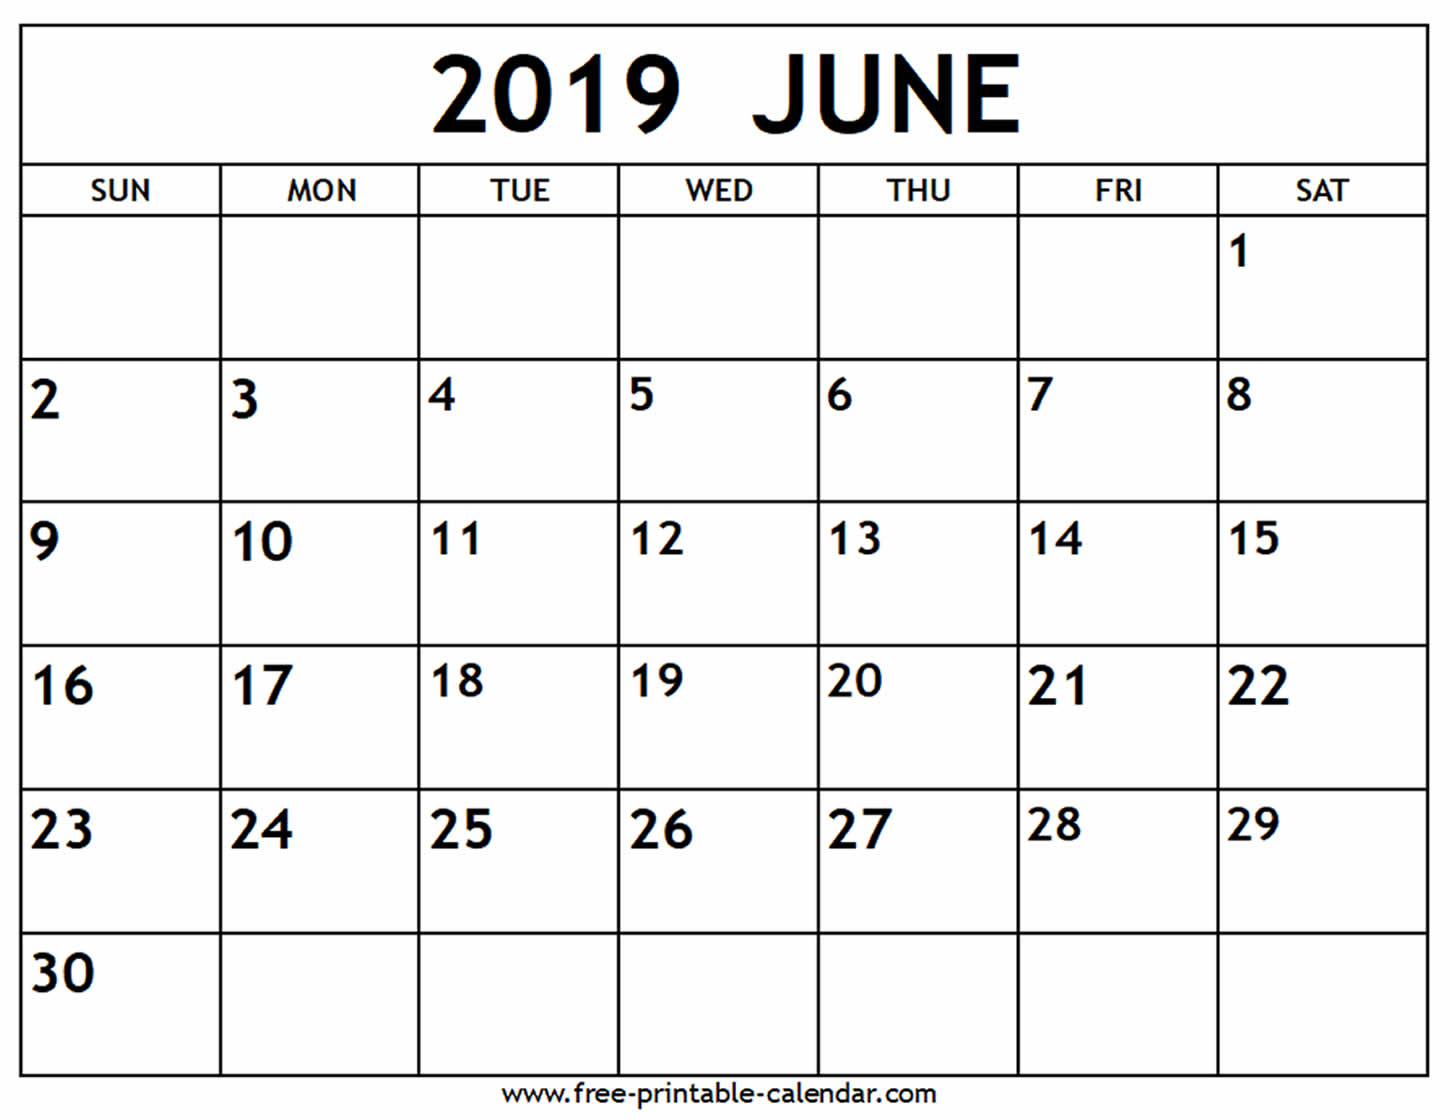 June 2019 Calendar - Free-Printable-Calendar throughout Printable Blank Calendar June